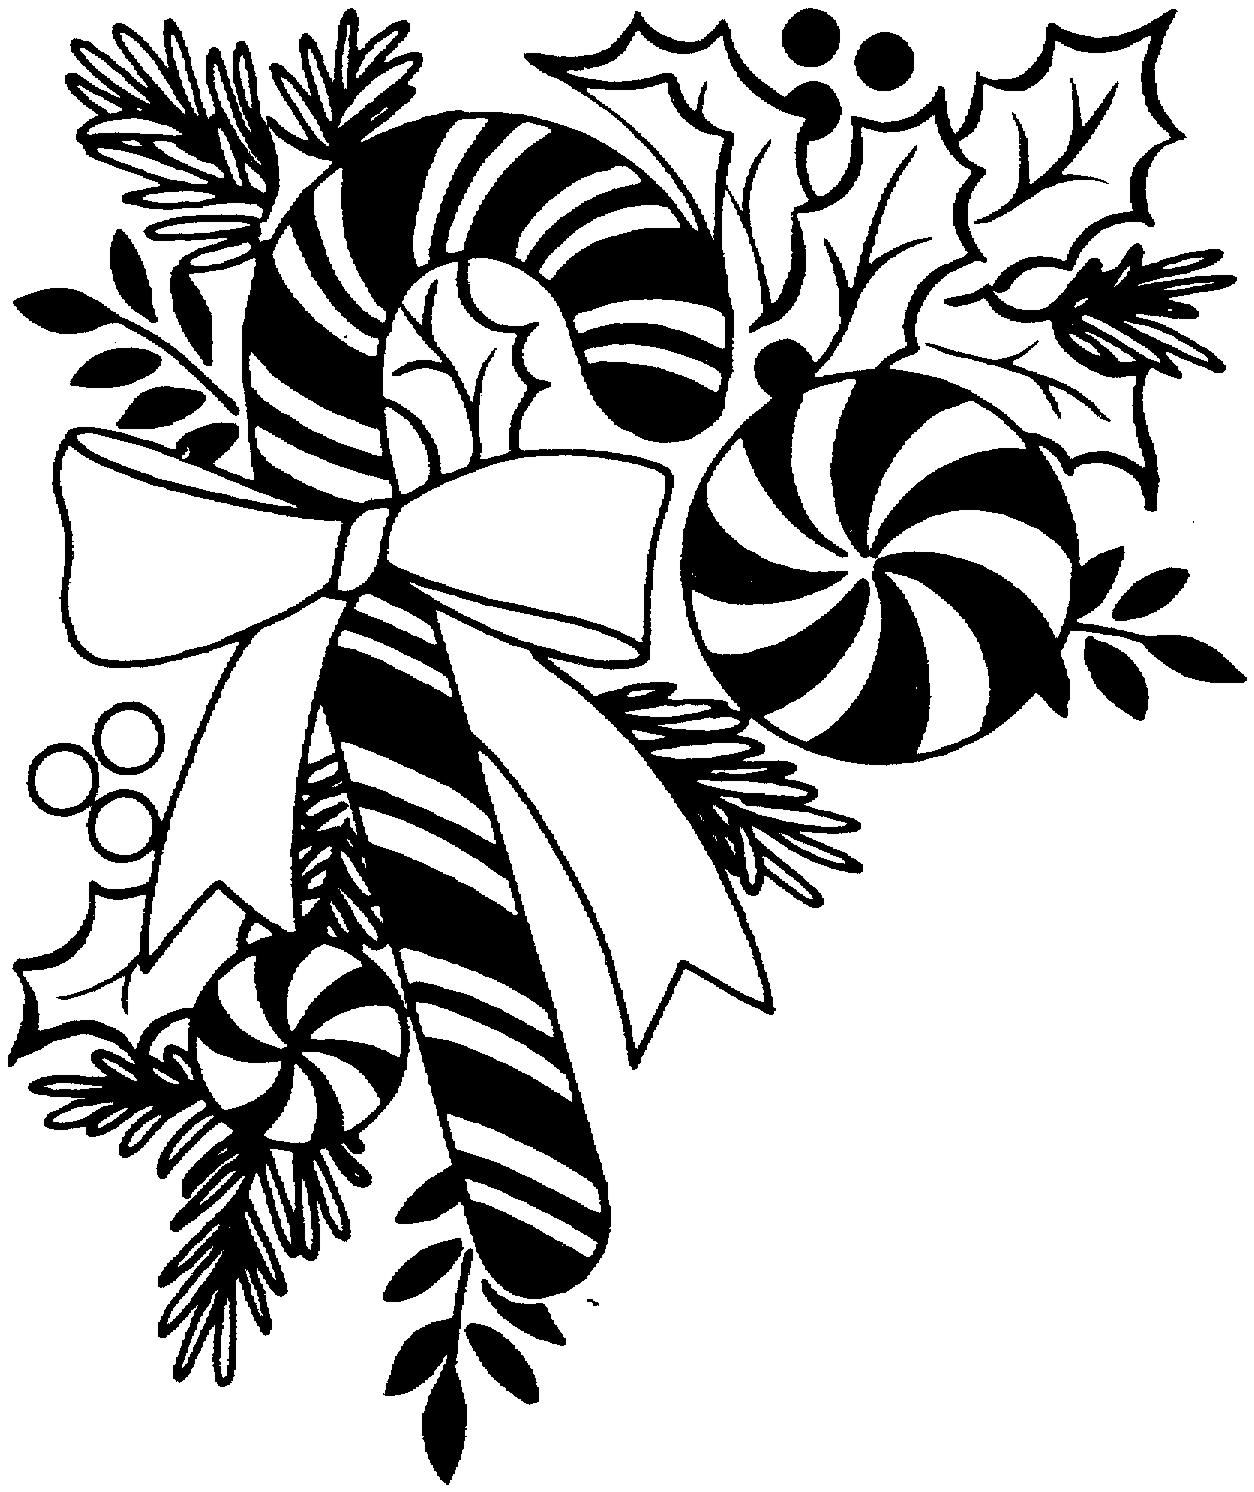 Free Christmas Clipart Borders Black And White Wallpapers